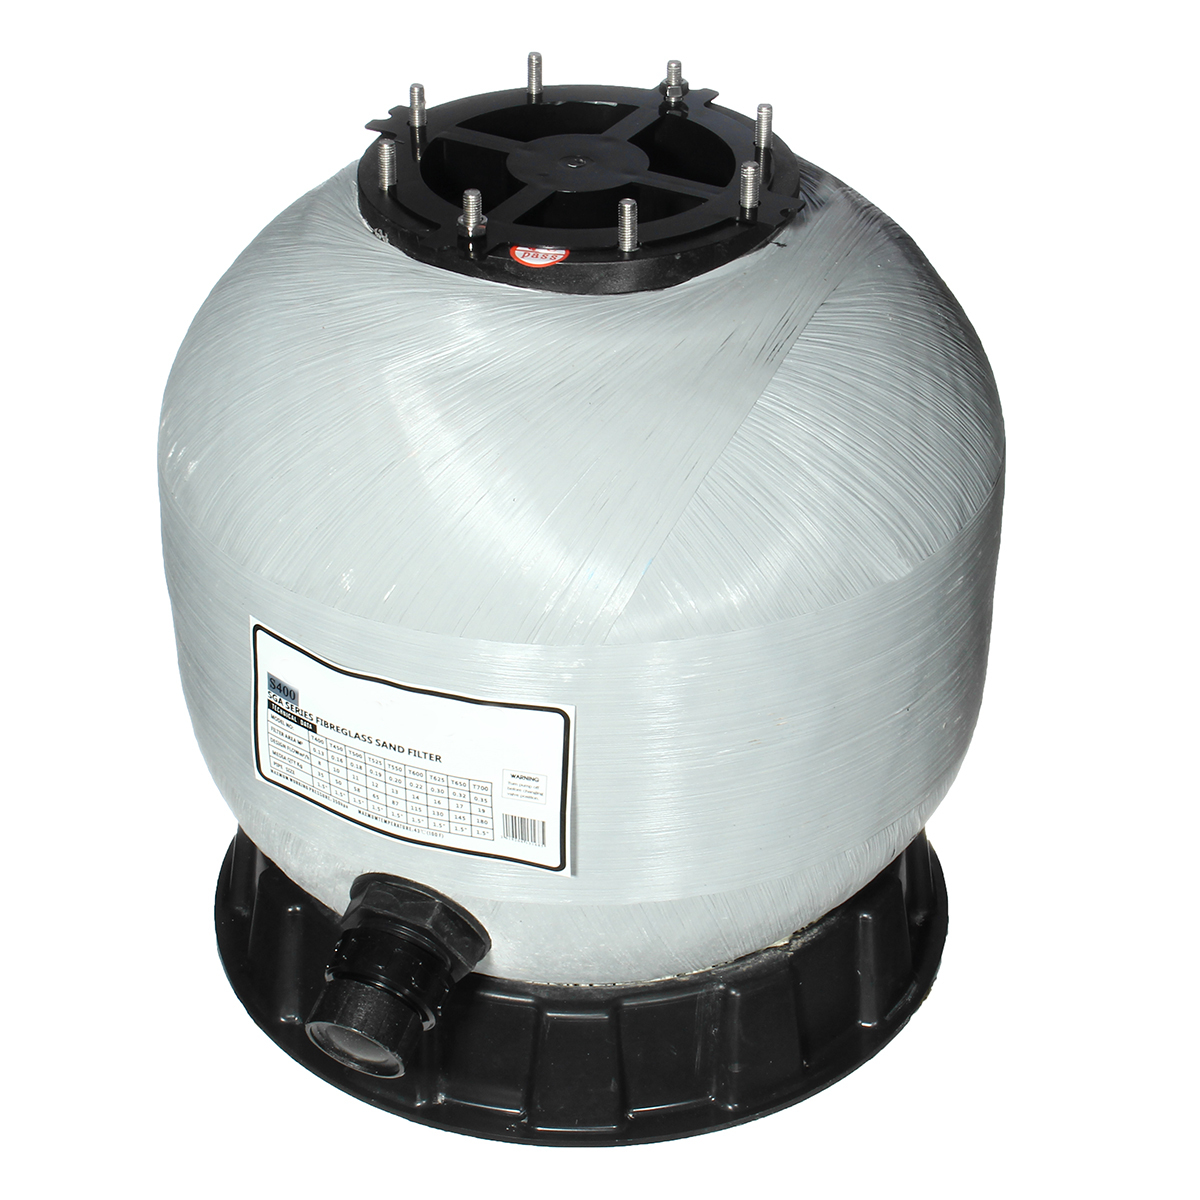 Filteranlage Pool 50m3 Details About Swimming Pool Fiberglass Sand Filter Tank Or Filter Valve Top Mount System